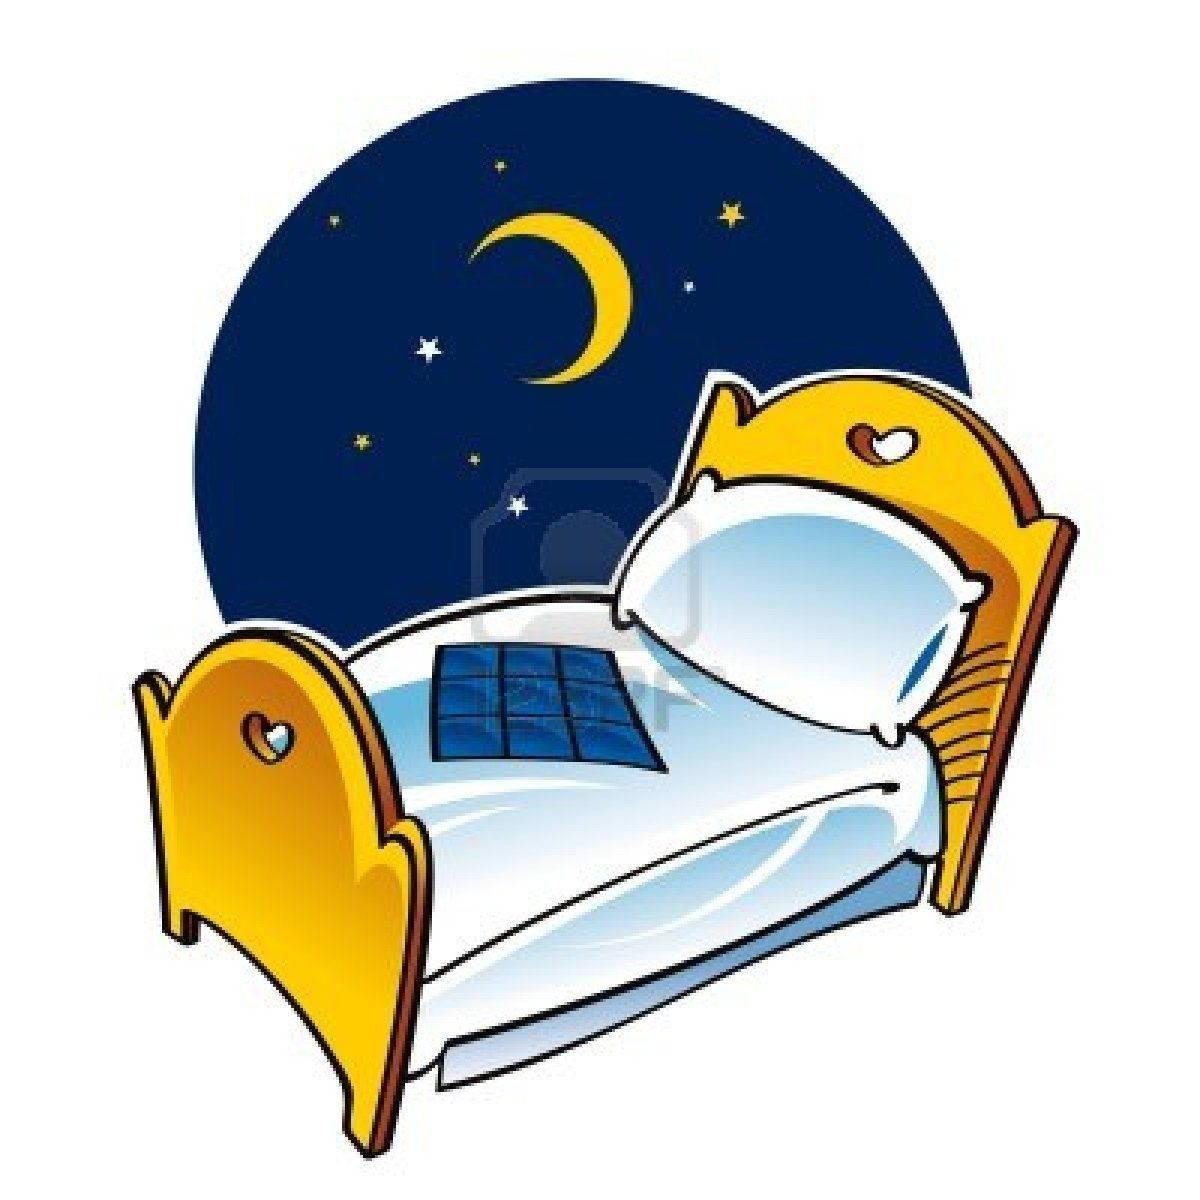 Night clipart night bed. Pin by chrisele nelson